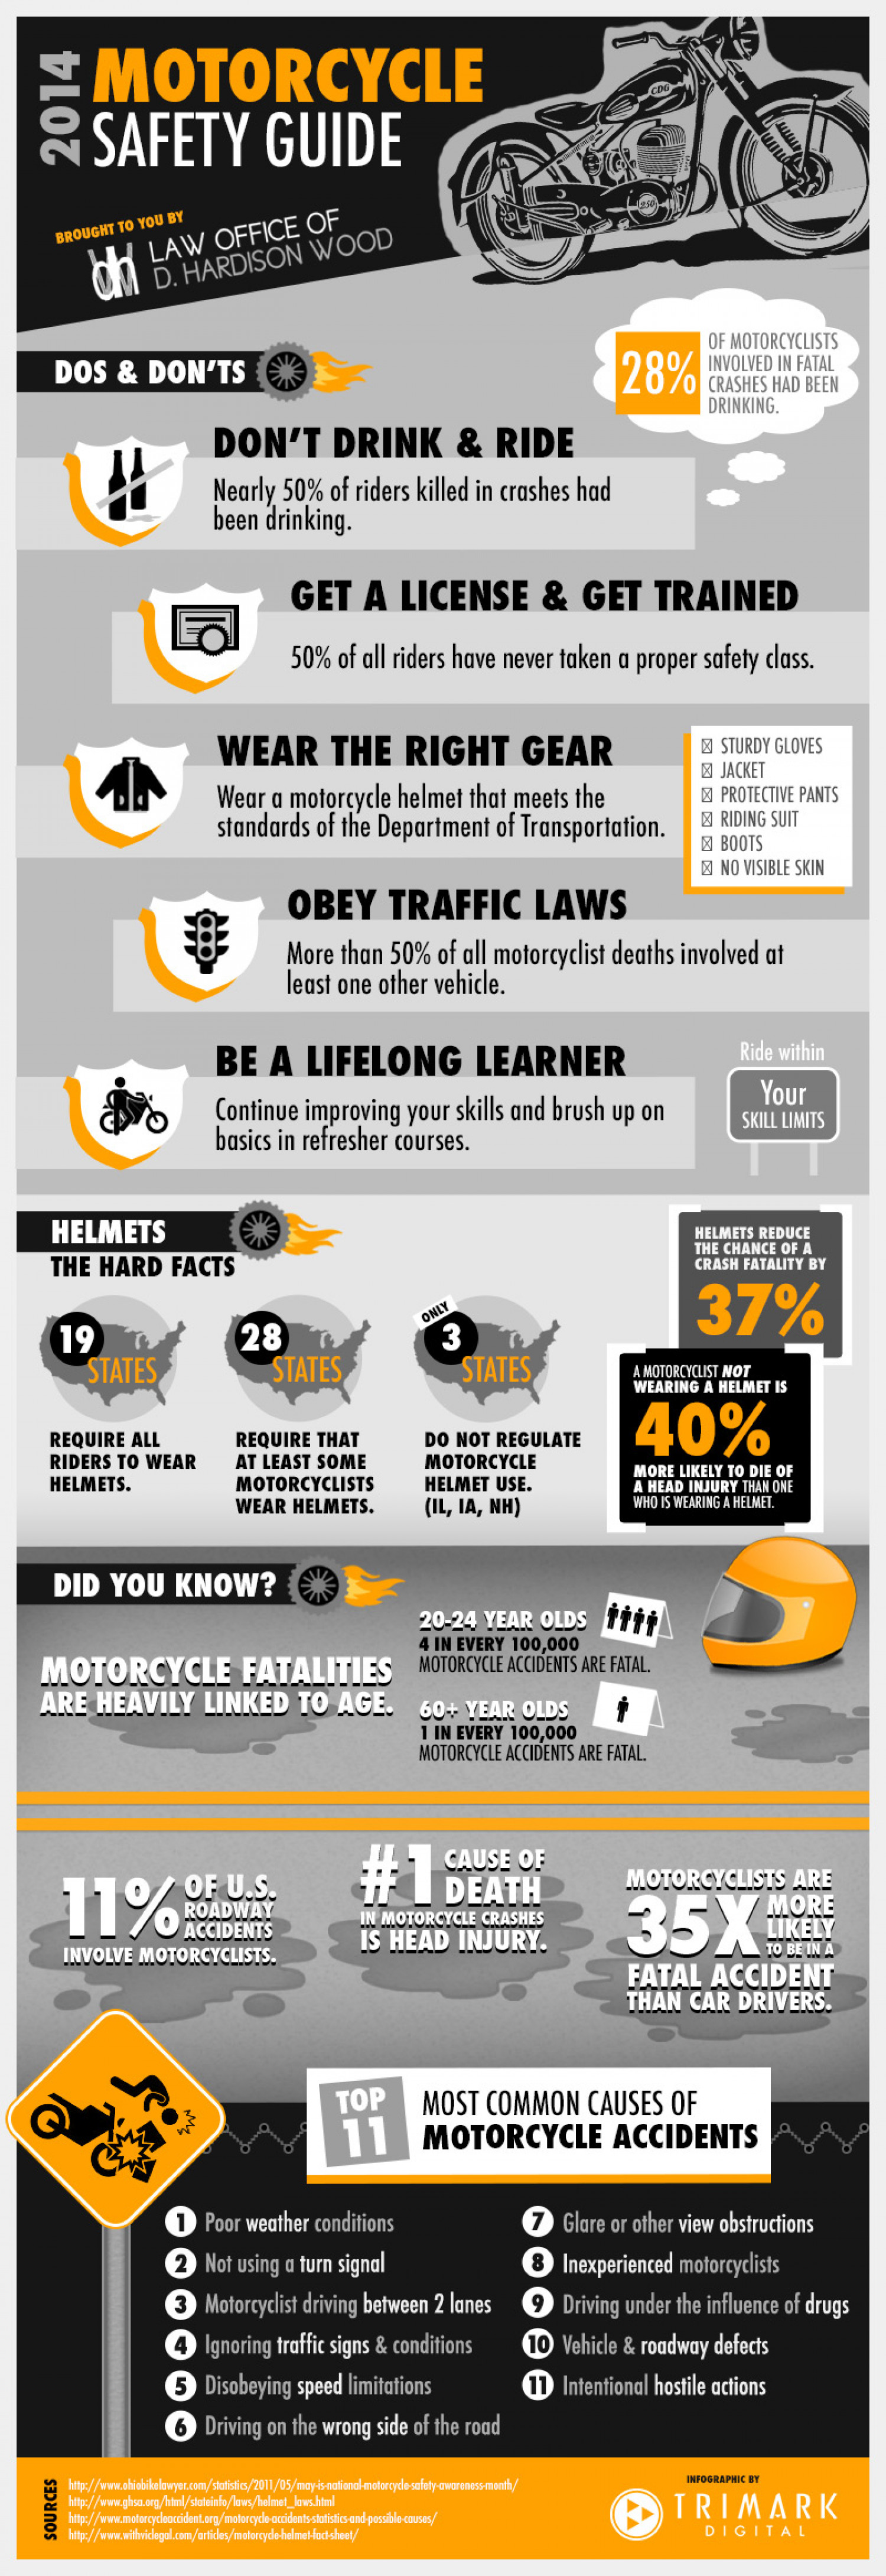 Motorcycle Safety Guide Infographic